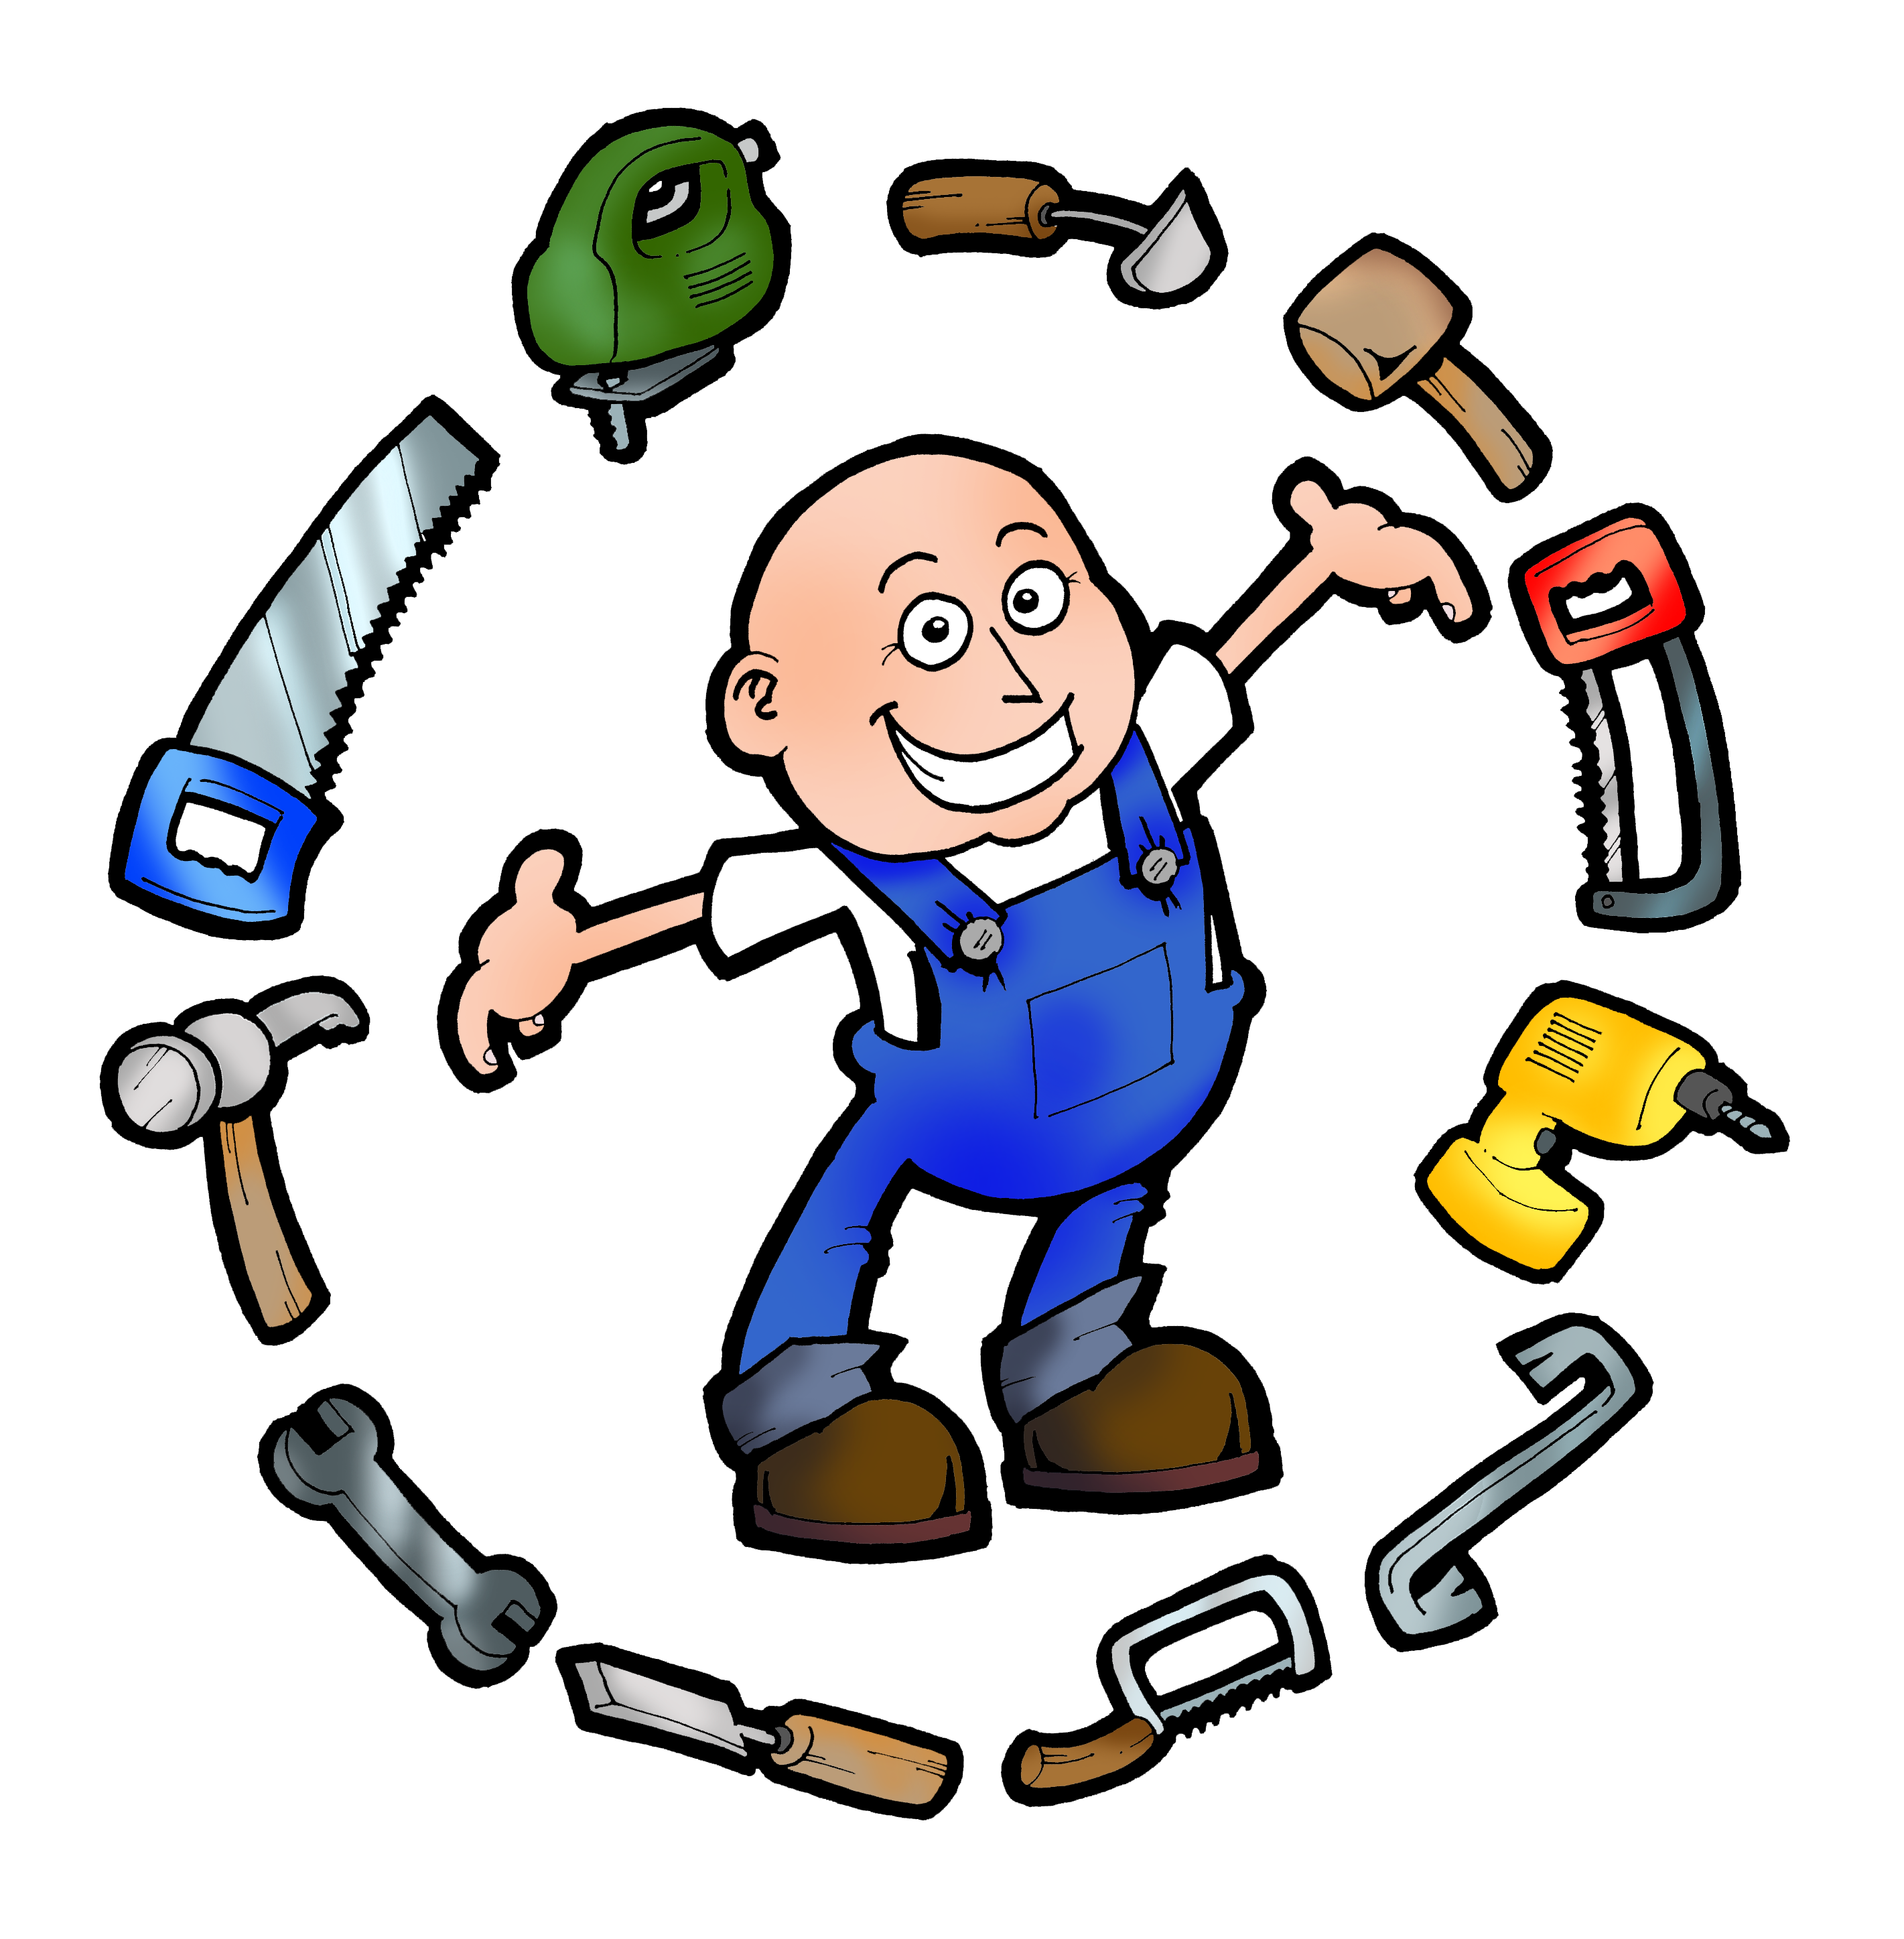 Handyman clipart hardware store. Free cliparts download clip